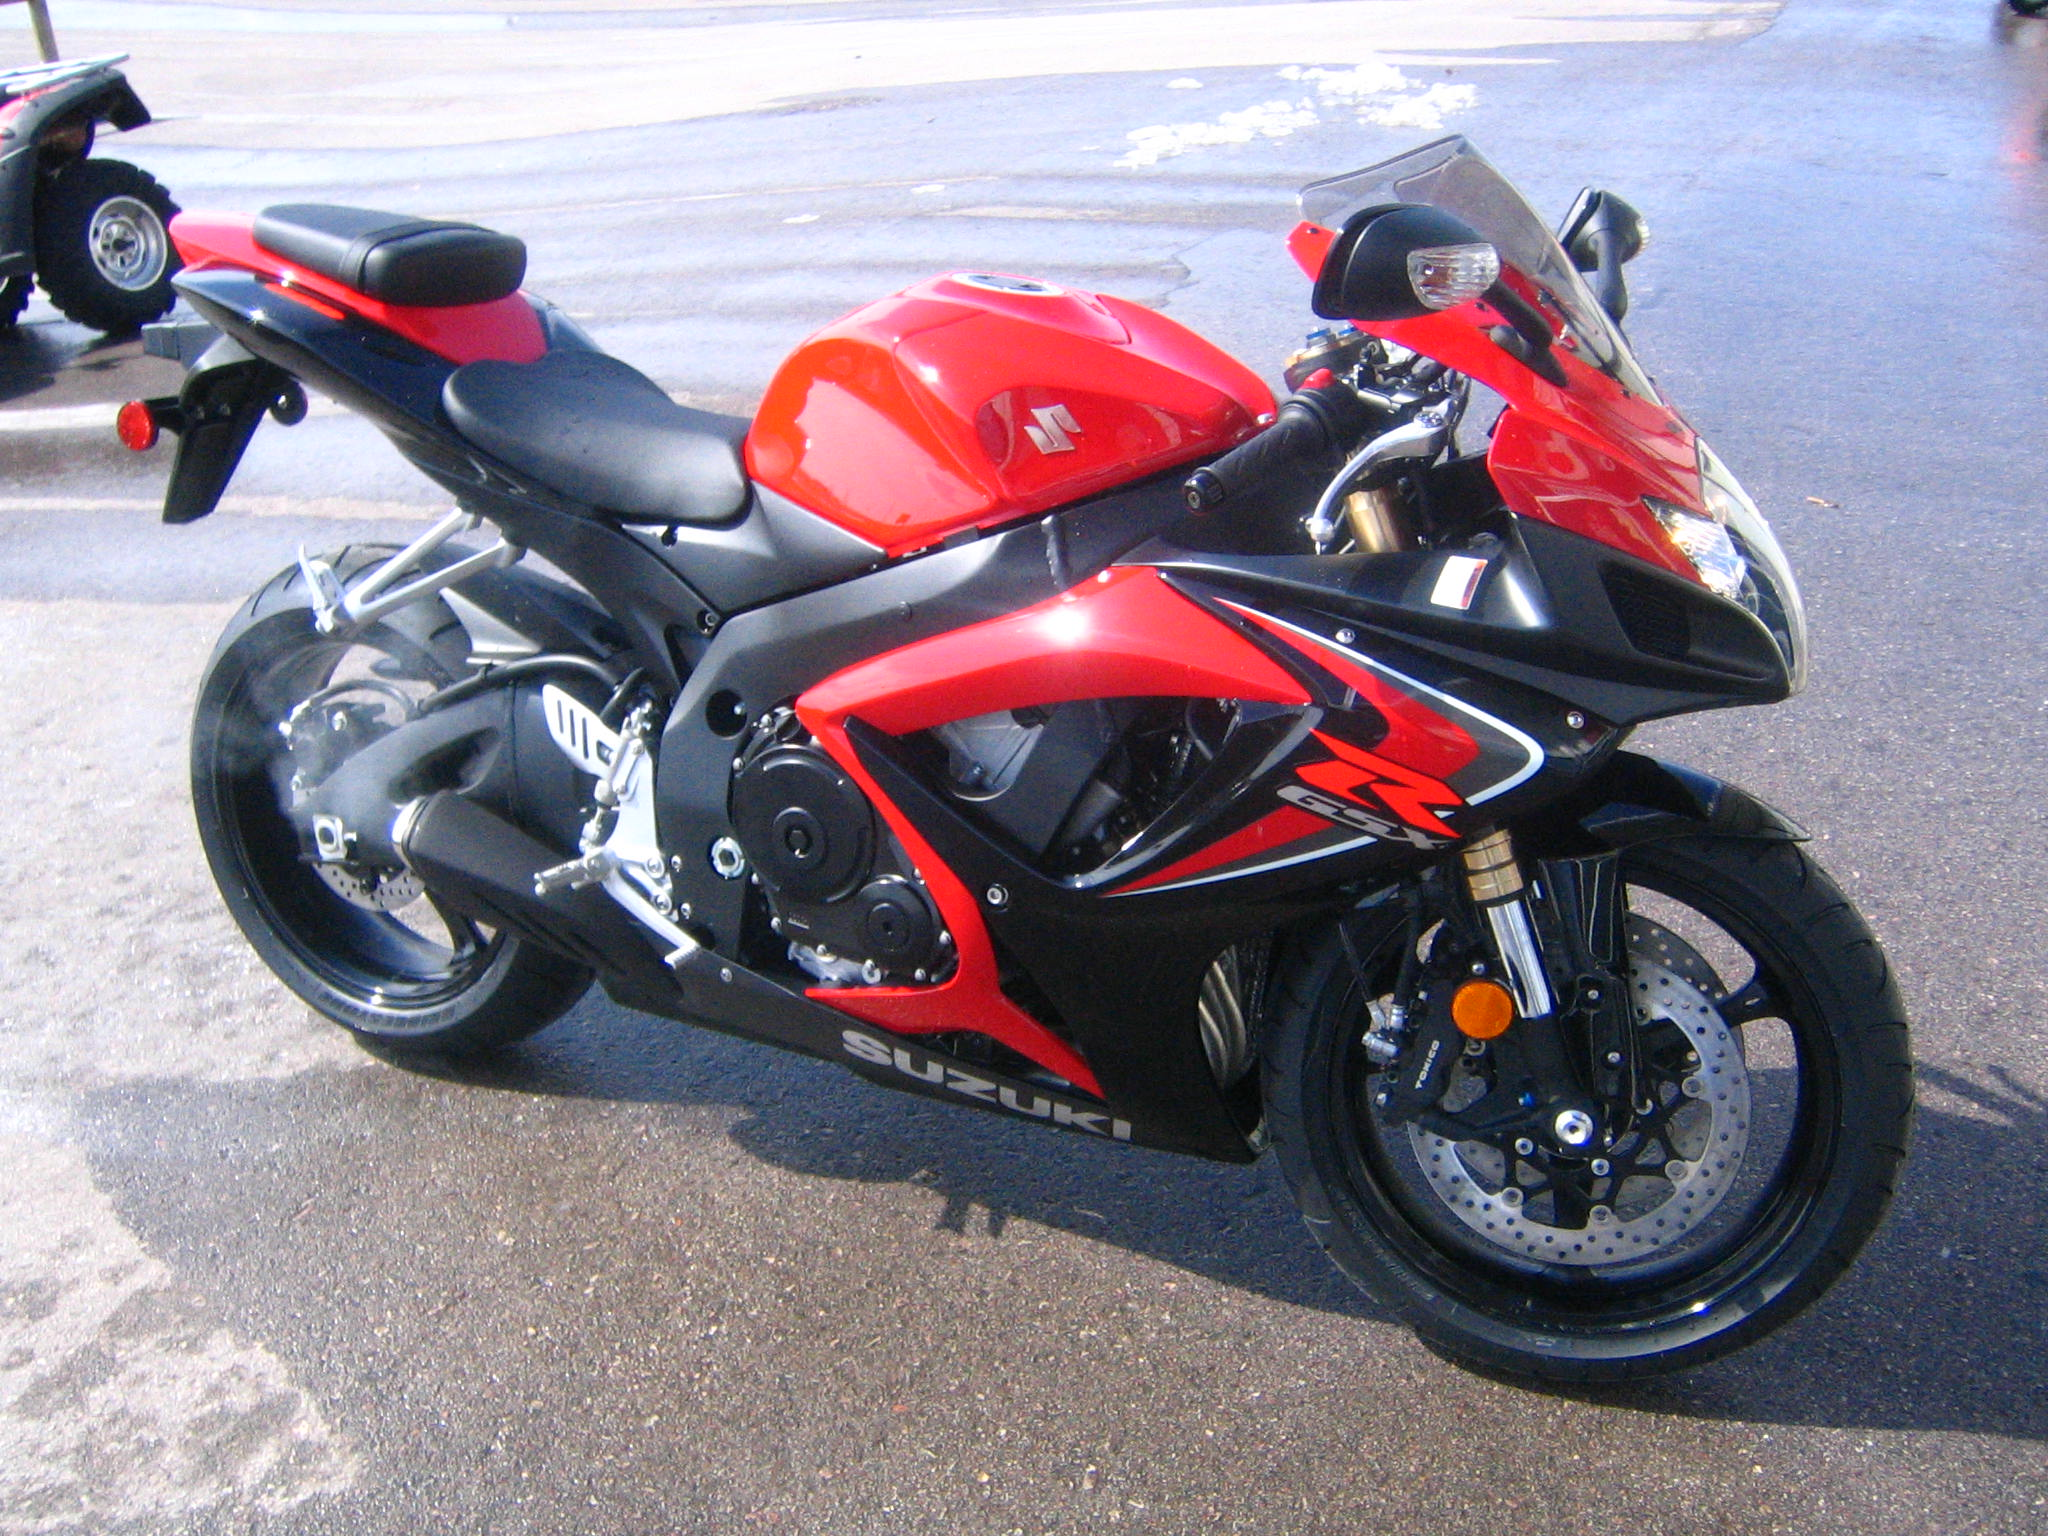 Review: 2008 Suzuki GSXR 600 Limited Edition – M.G. Reviews